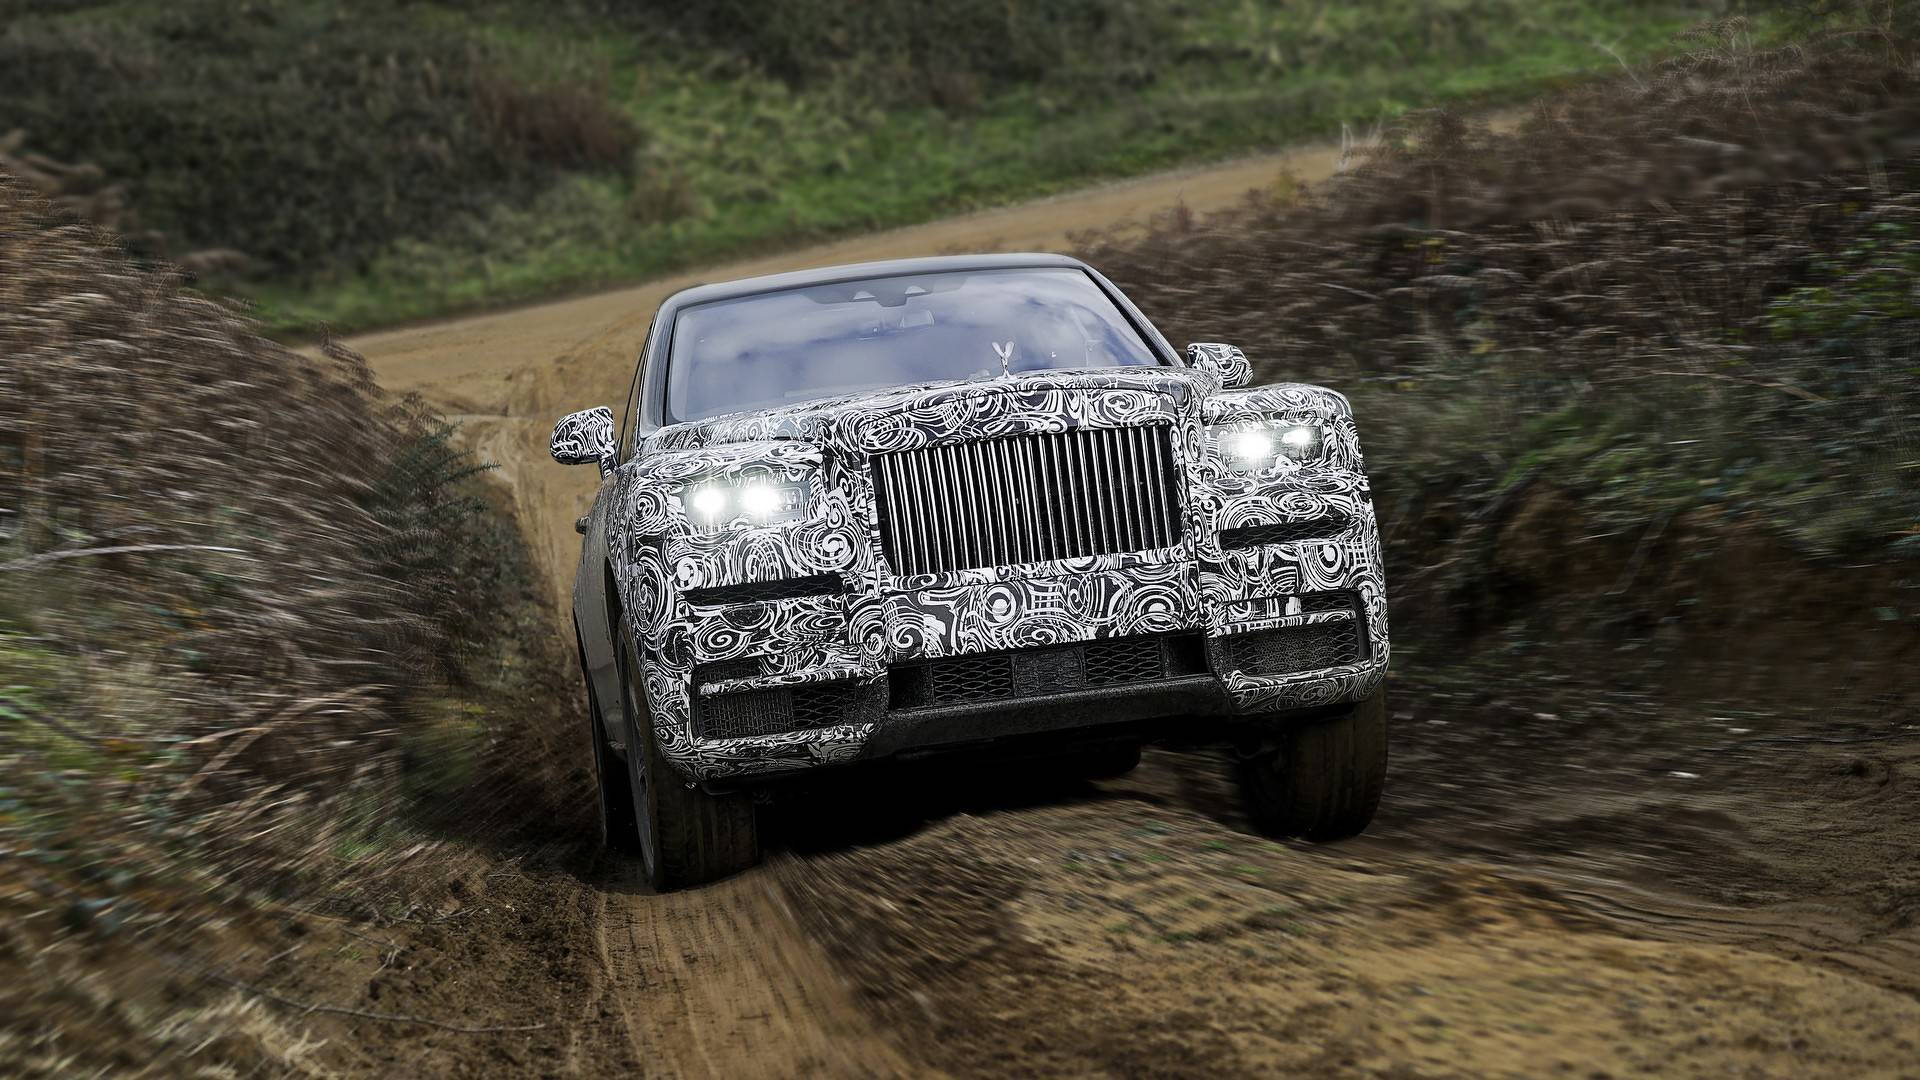 Rolls-Royce Cullinan name confirmed for new super SUV